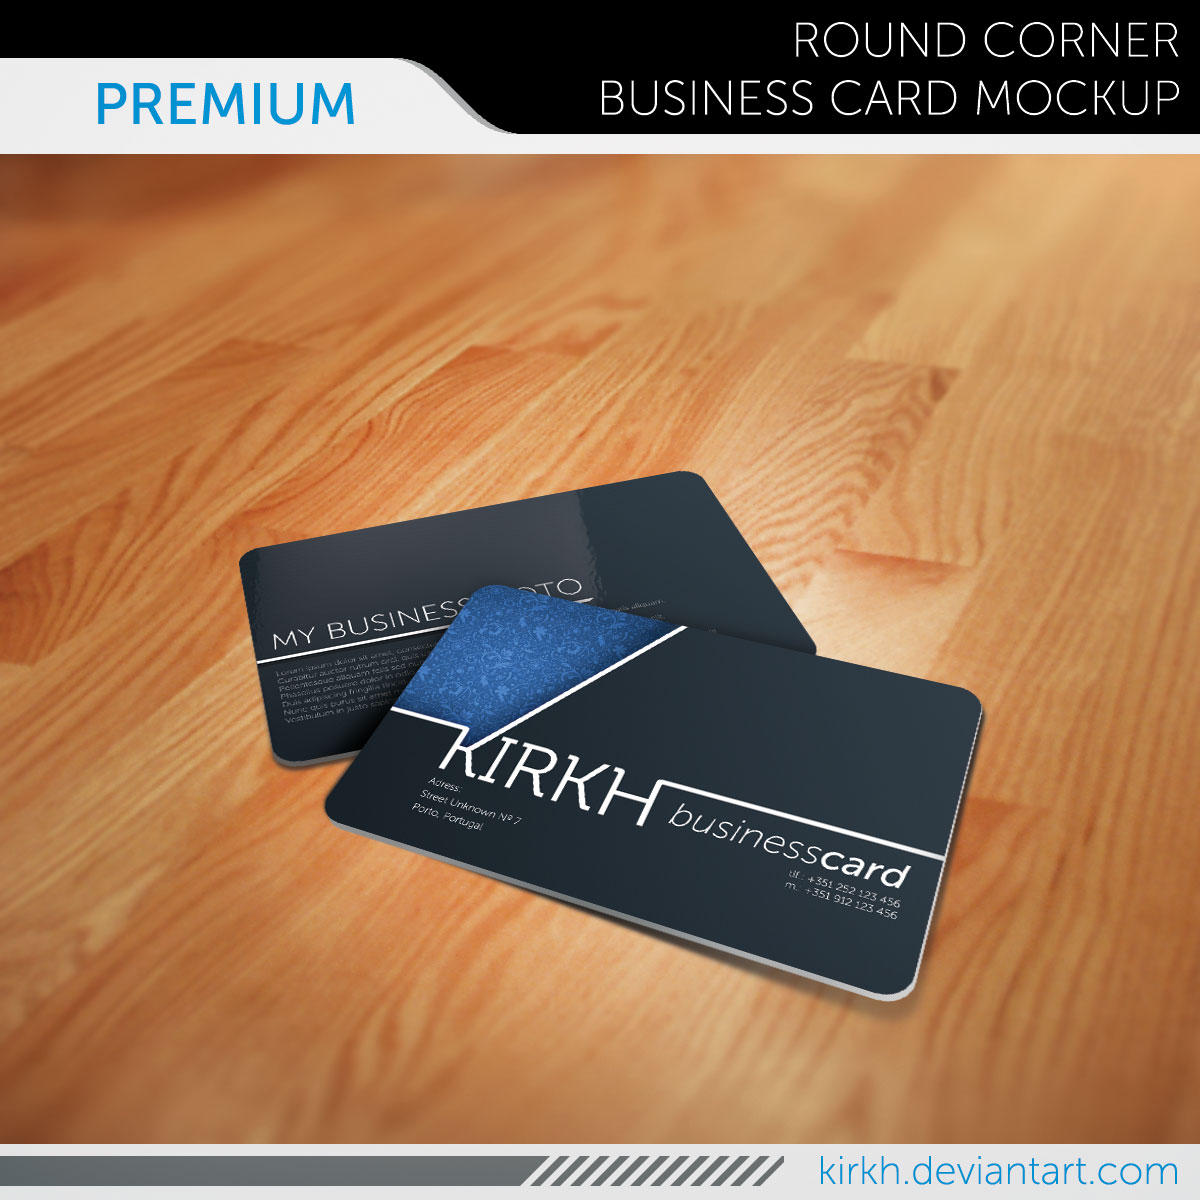 Premium Business Card Mockup by InfiniteCreations on